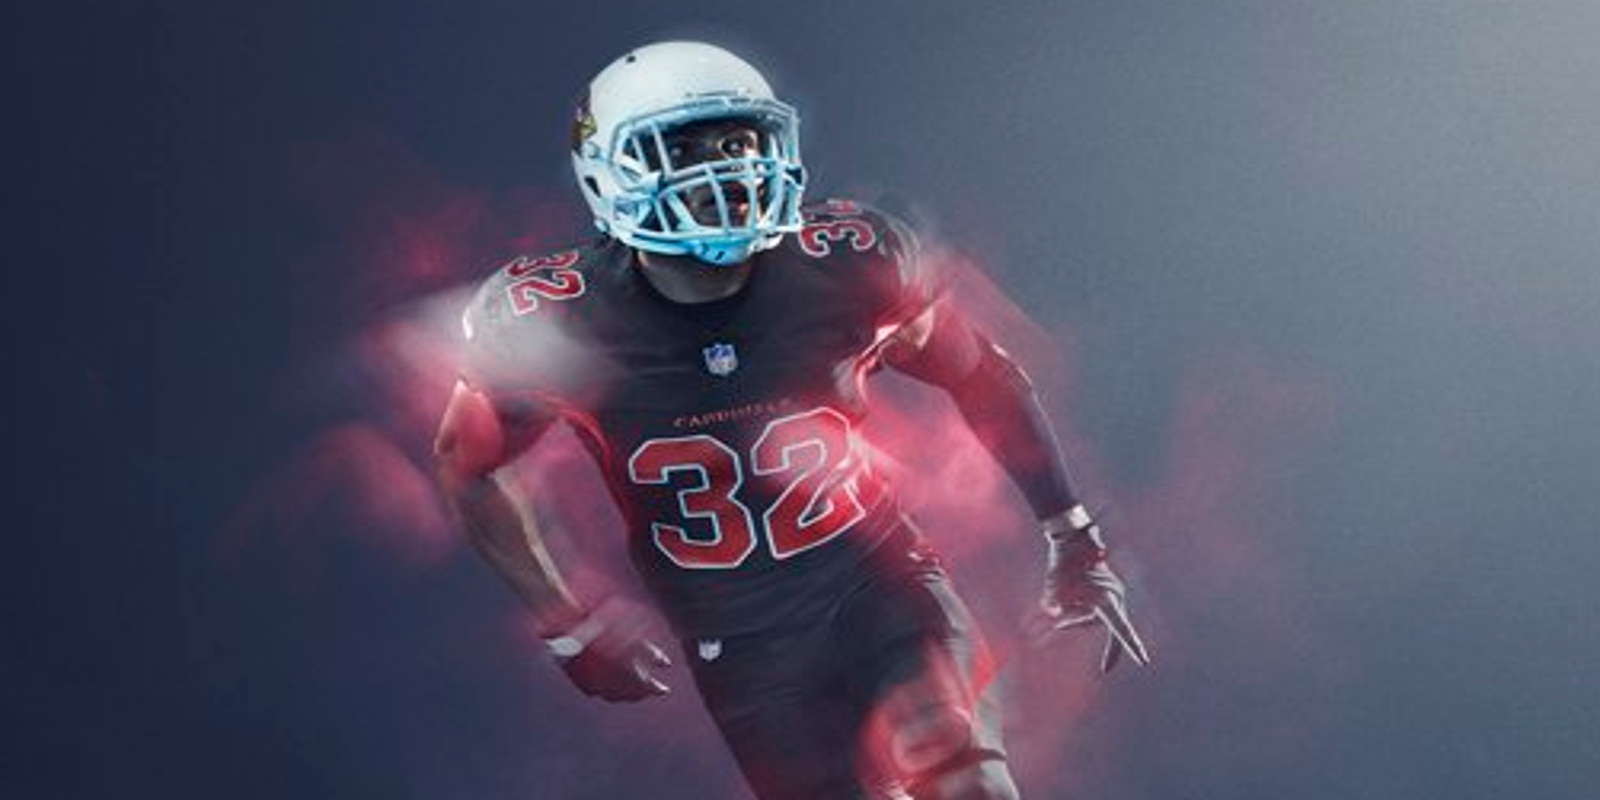 c81ae381d NFL has Color Rush uniforms for every team